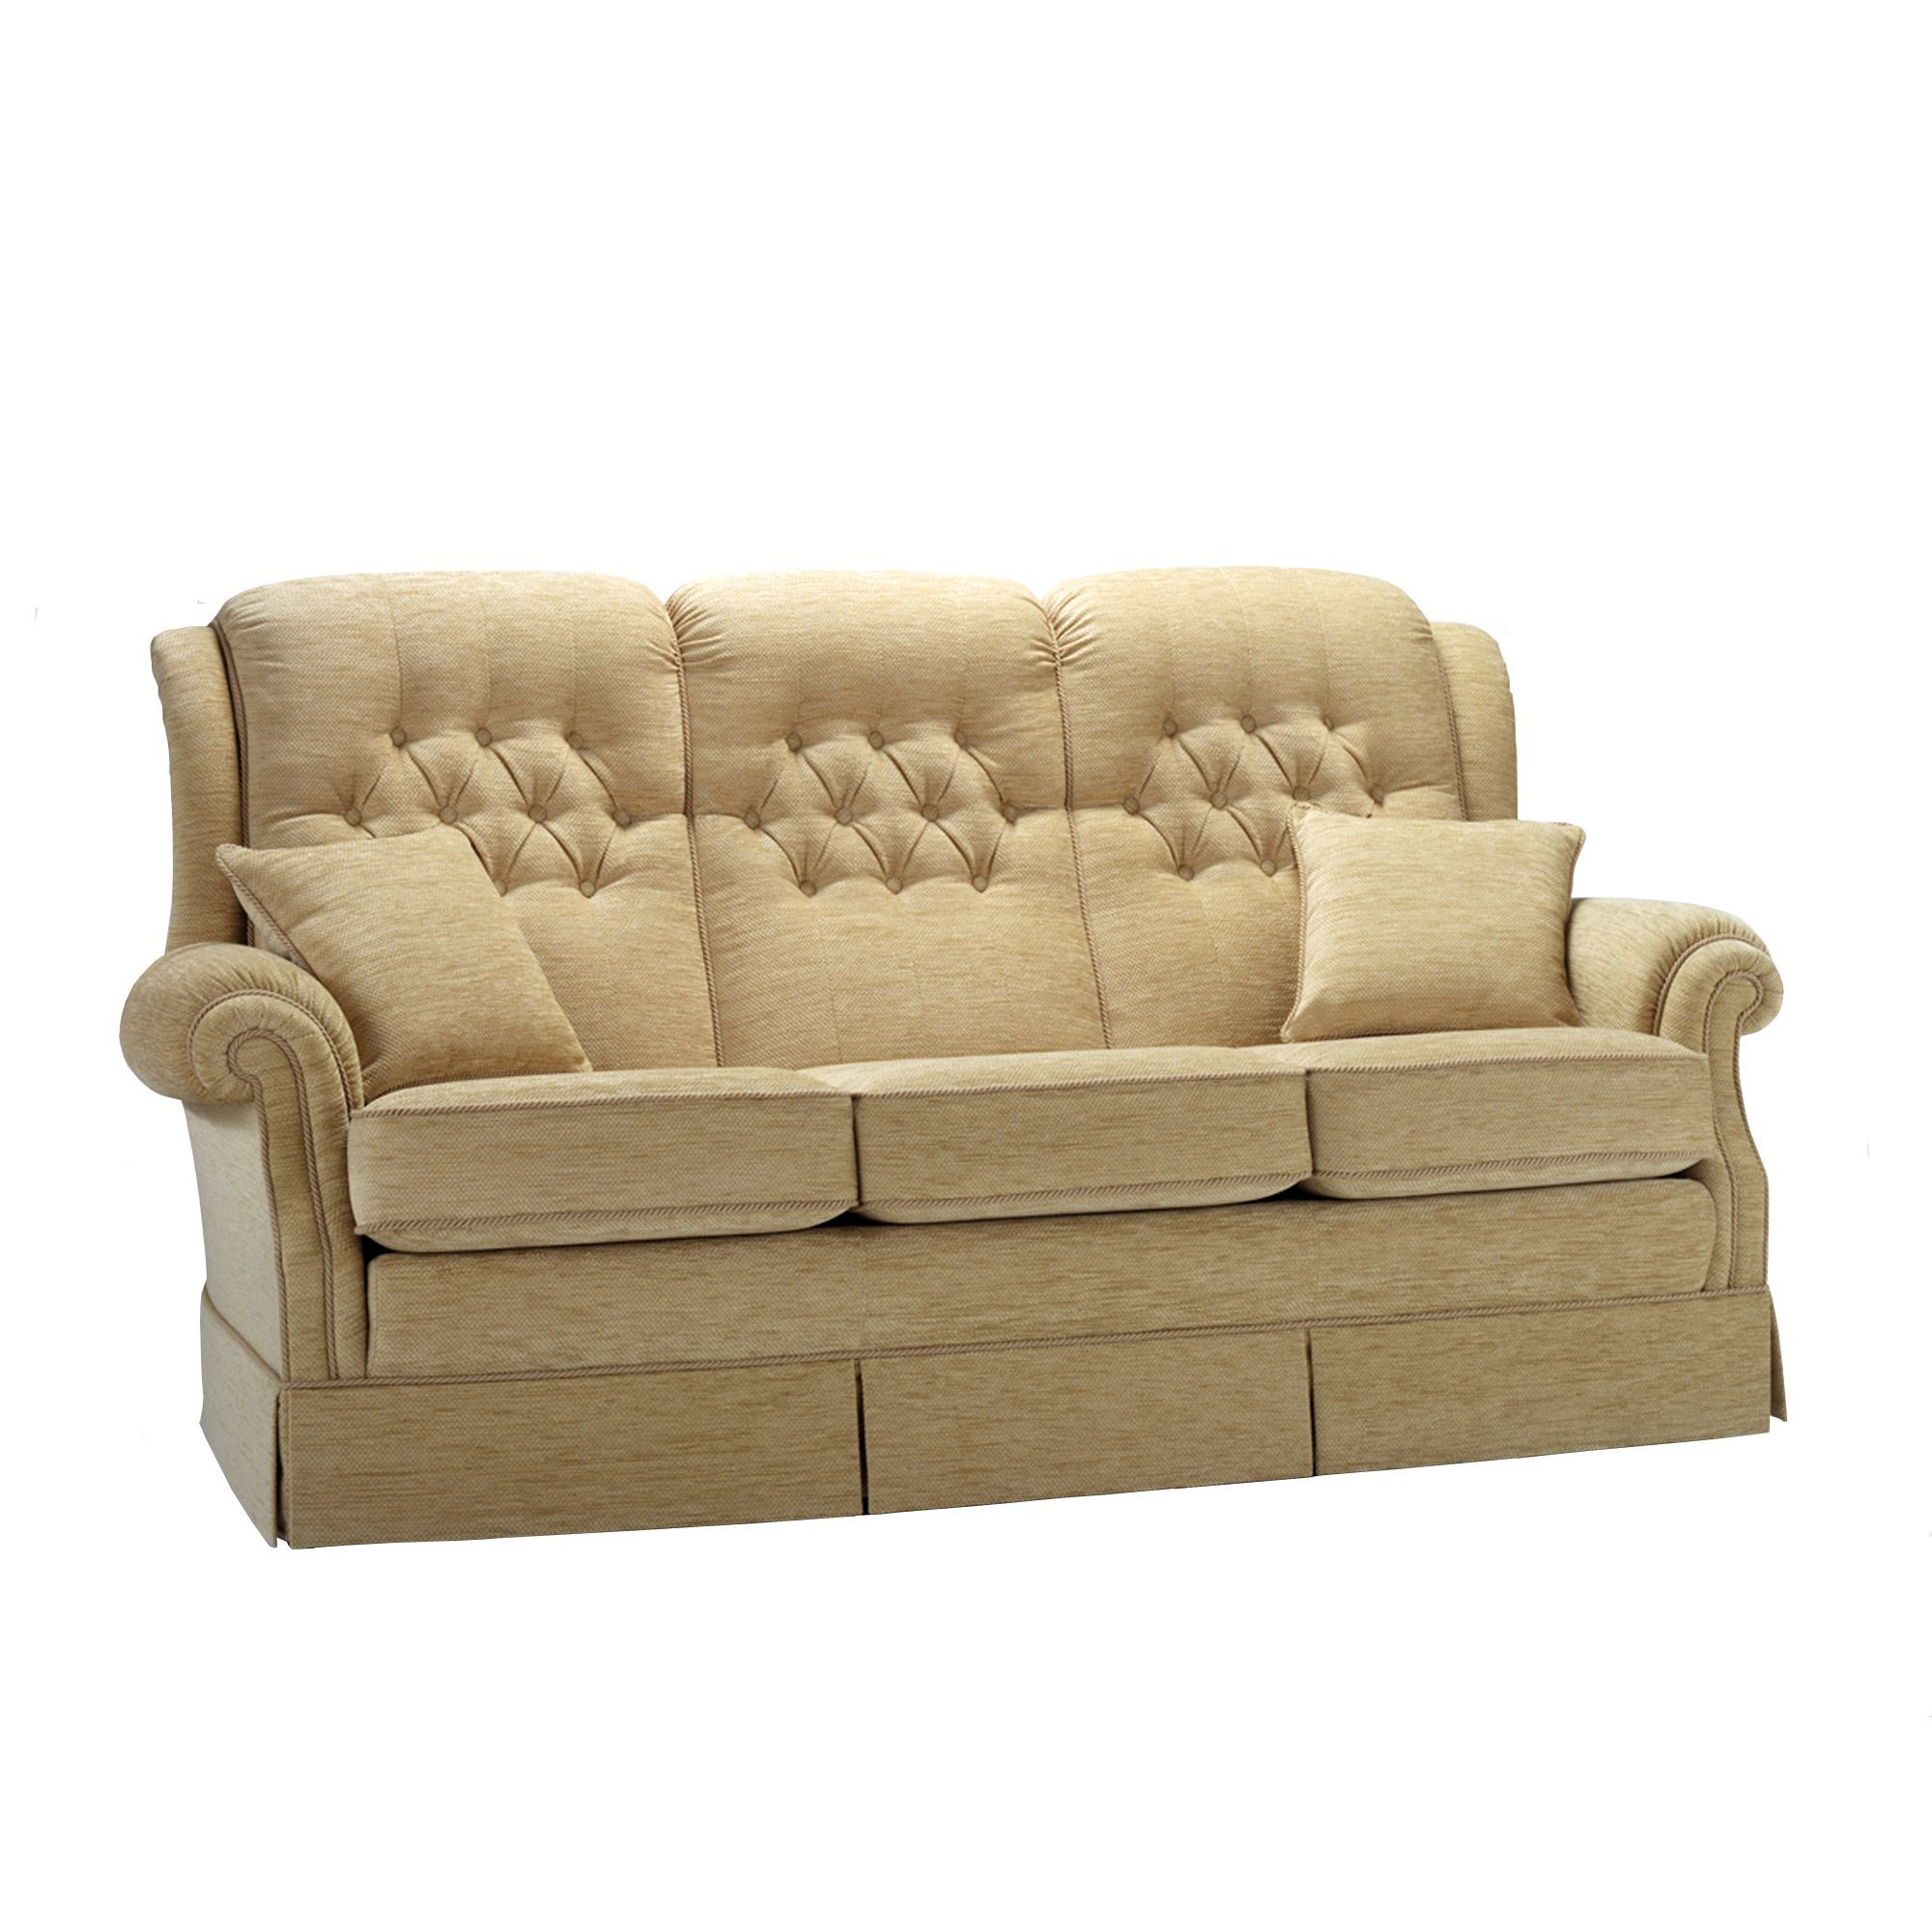 Vale Amalfi 3 Seater Sofa – Cookes Furniture Cookes Furniture